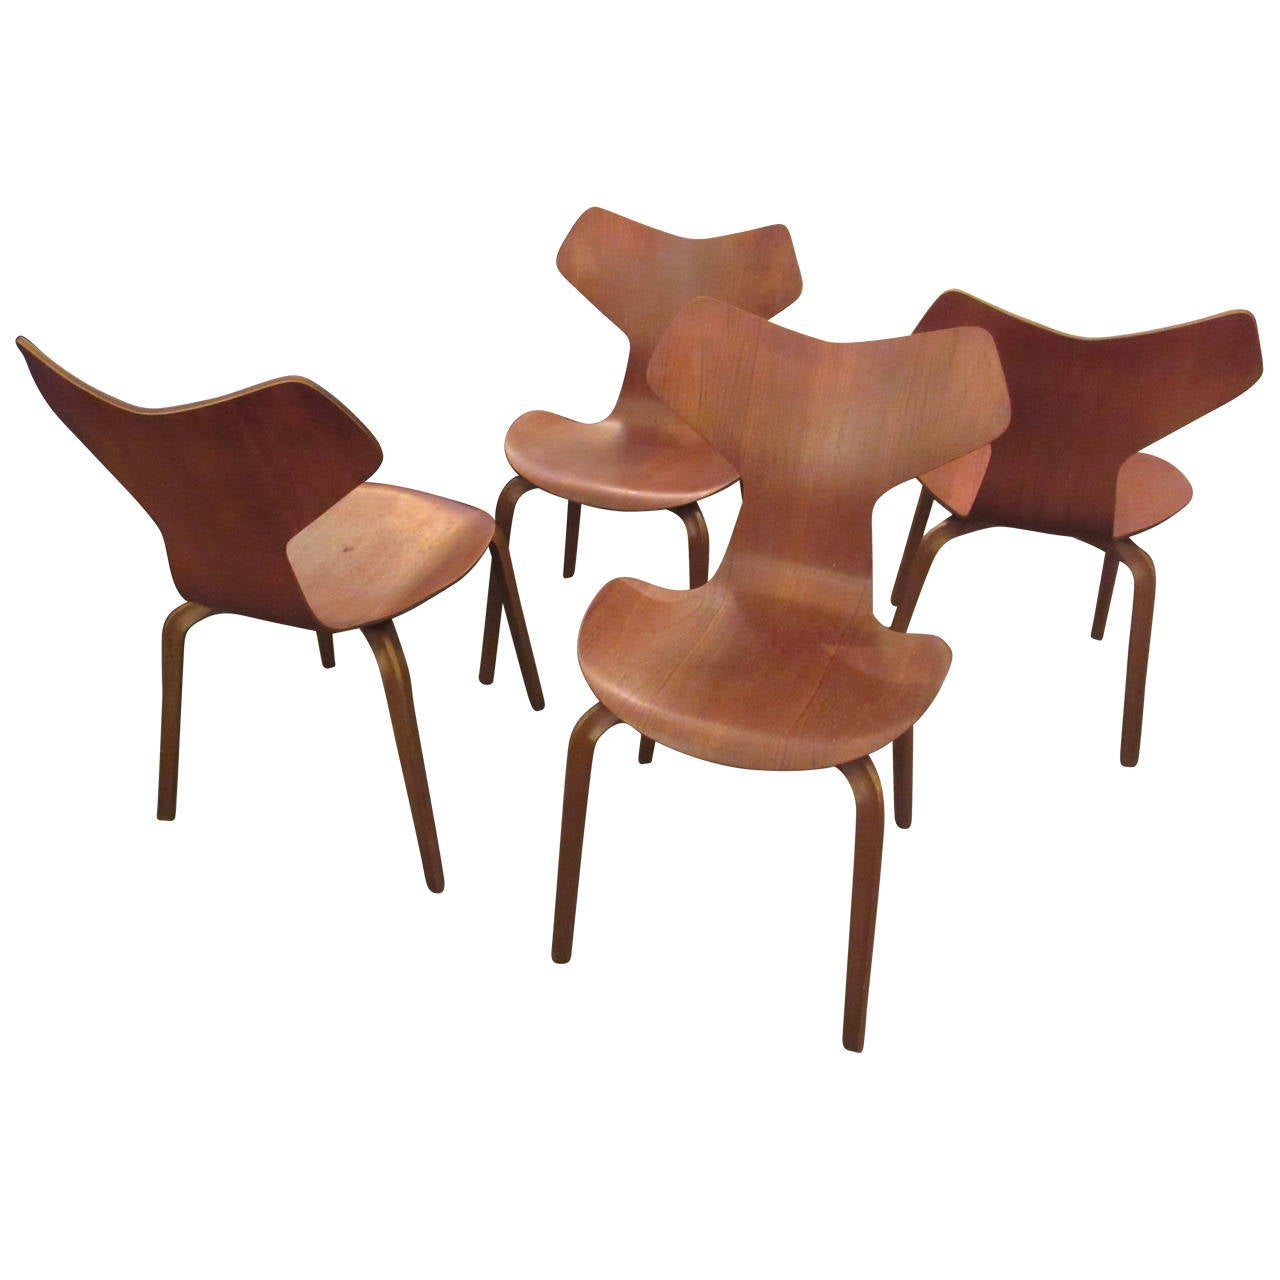 arne jacobsen 4130 stacking ant chairs with wood legs by fritz hansen at 1stdibs. Black Bedroom Furniture Sets. Home Design Ideas